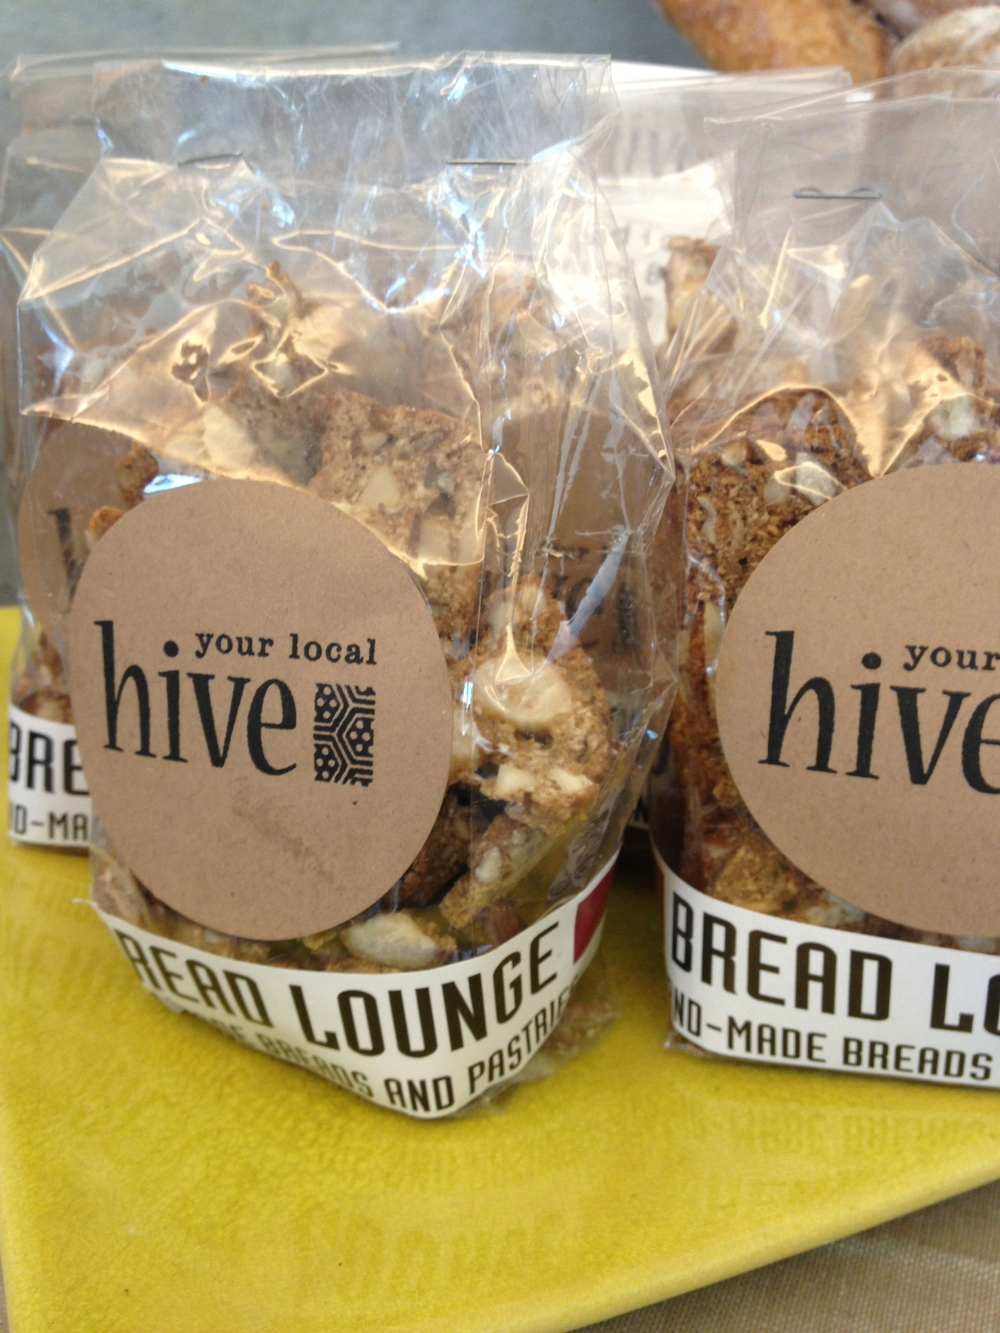 SHOP YOUR LOCAL HIVE!